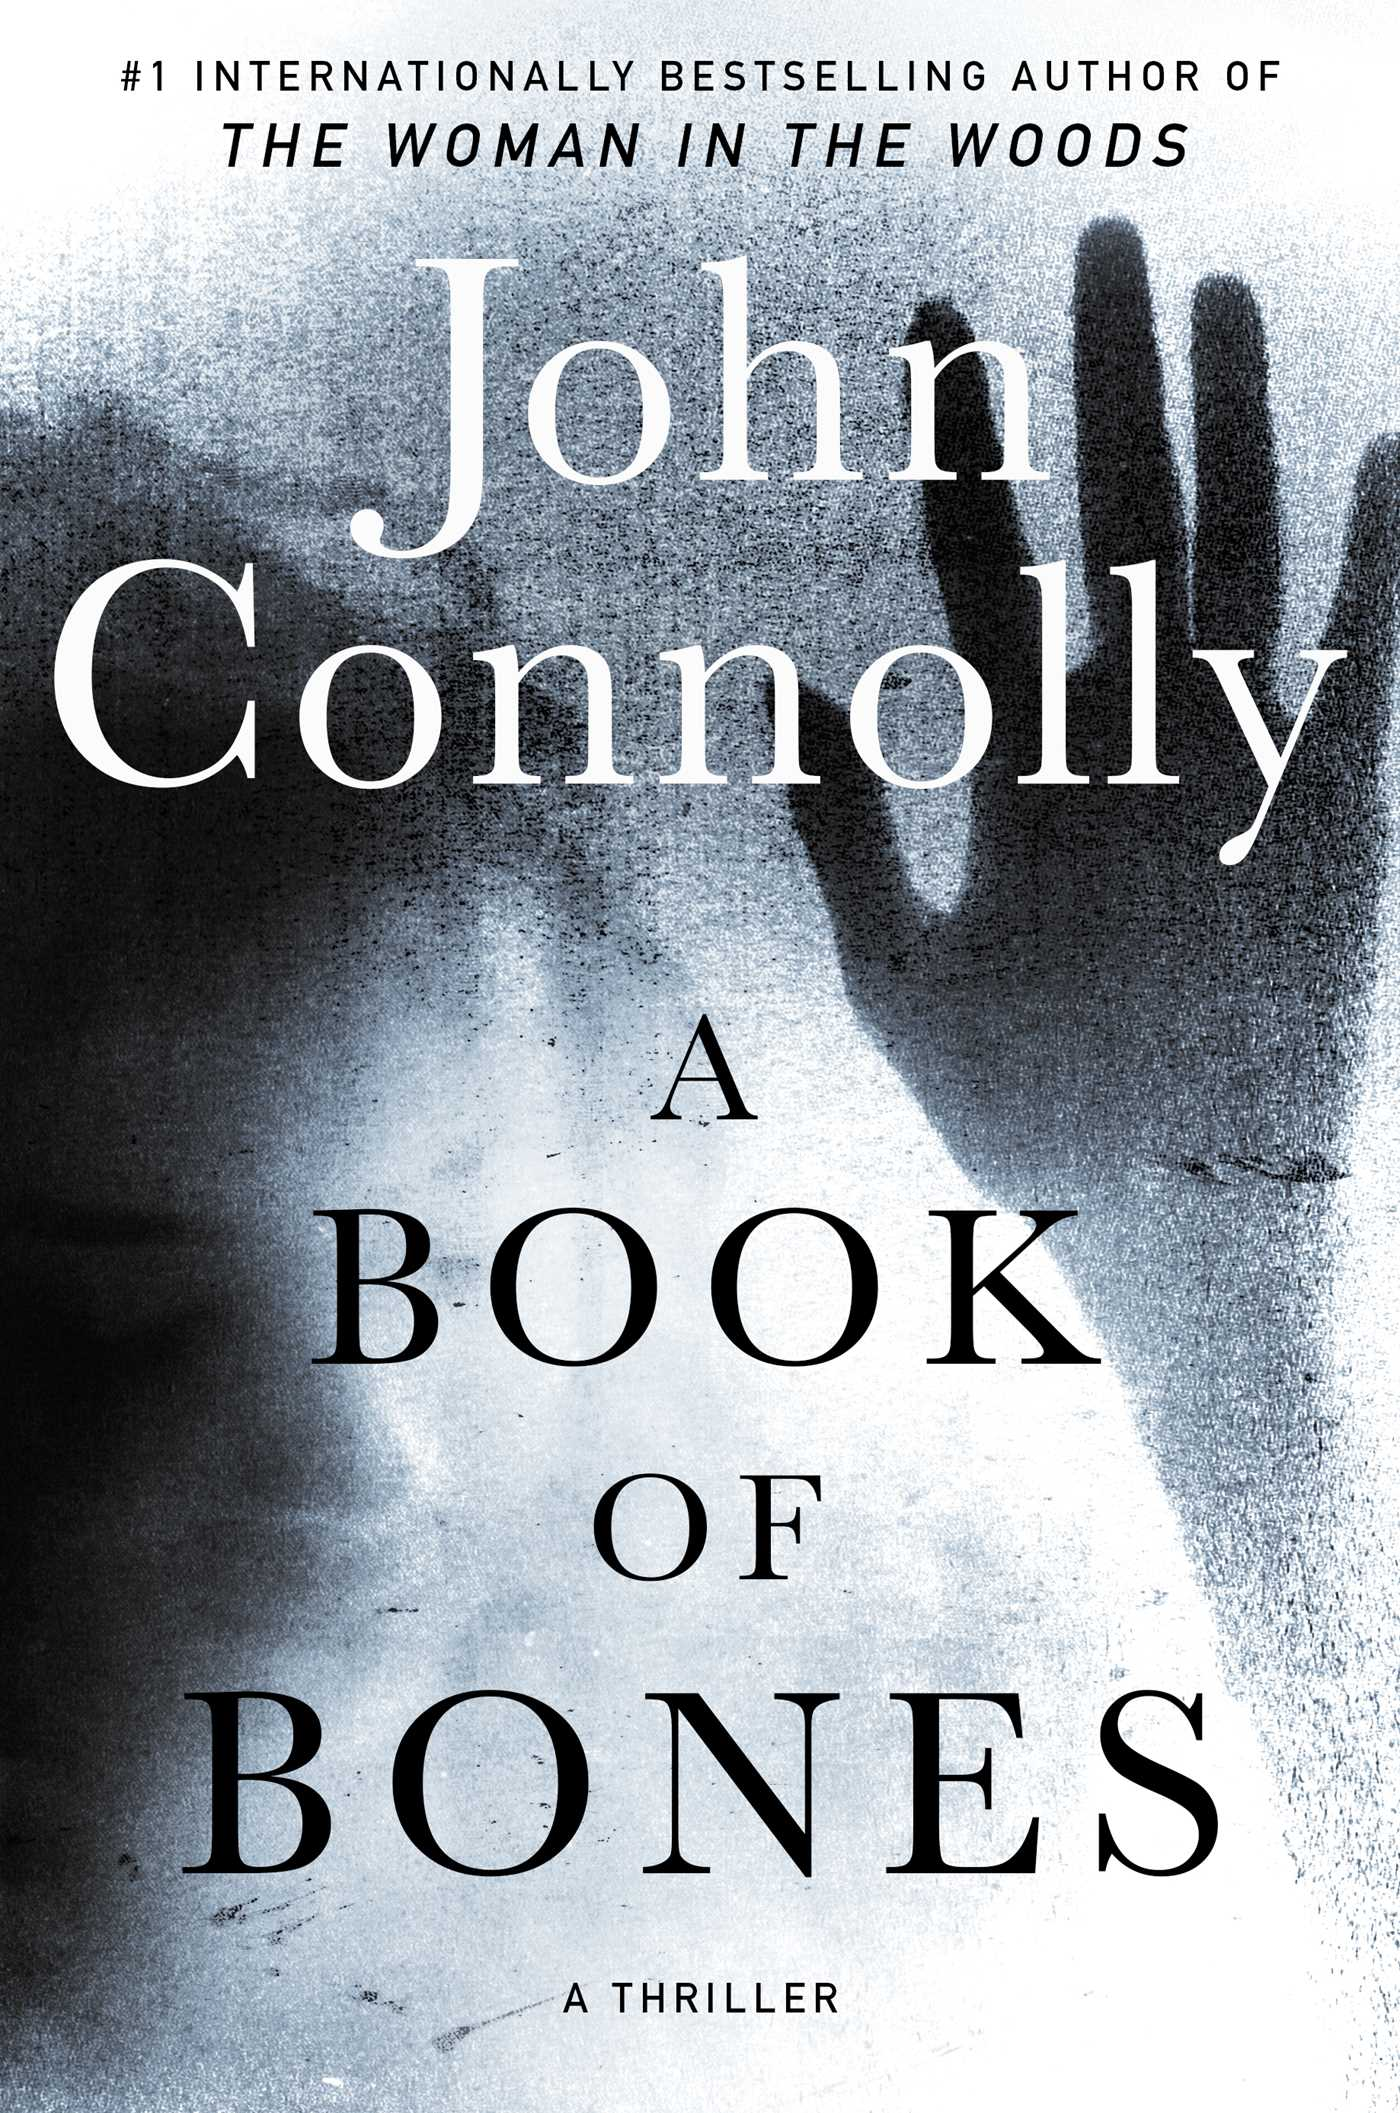 a-book-of-bones-9781982127510_hr.jpg